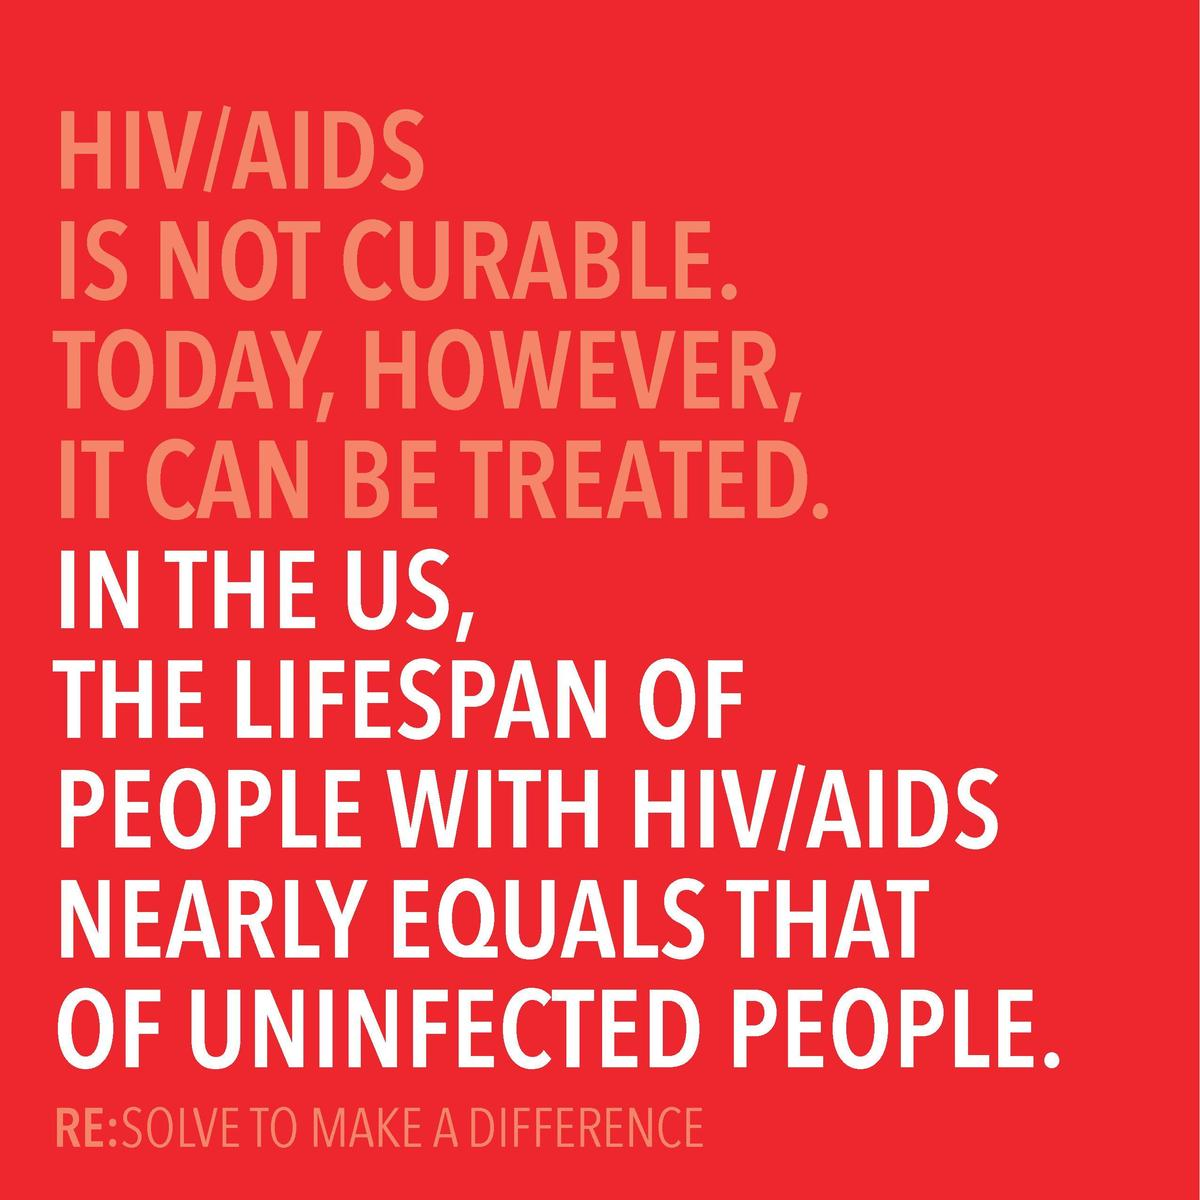 HIV AIDS IS NOT CURABLE. TODAY, HOWEVER, IT CAN BE TREATED. IN THE US, THE LIFESPAN OF PEOPLE WITH HIV AIDS NEARLY EQUALS ...